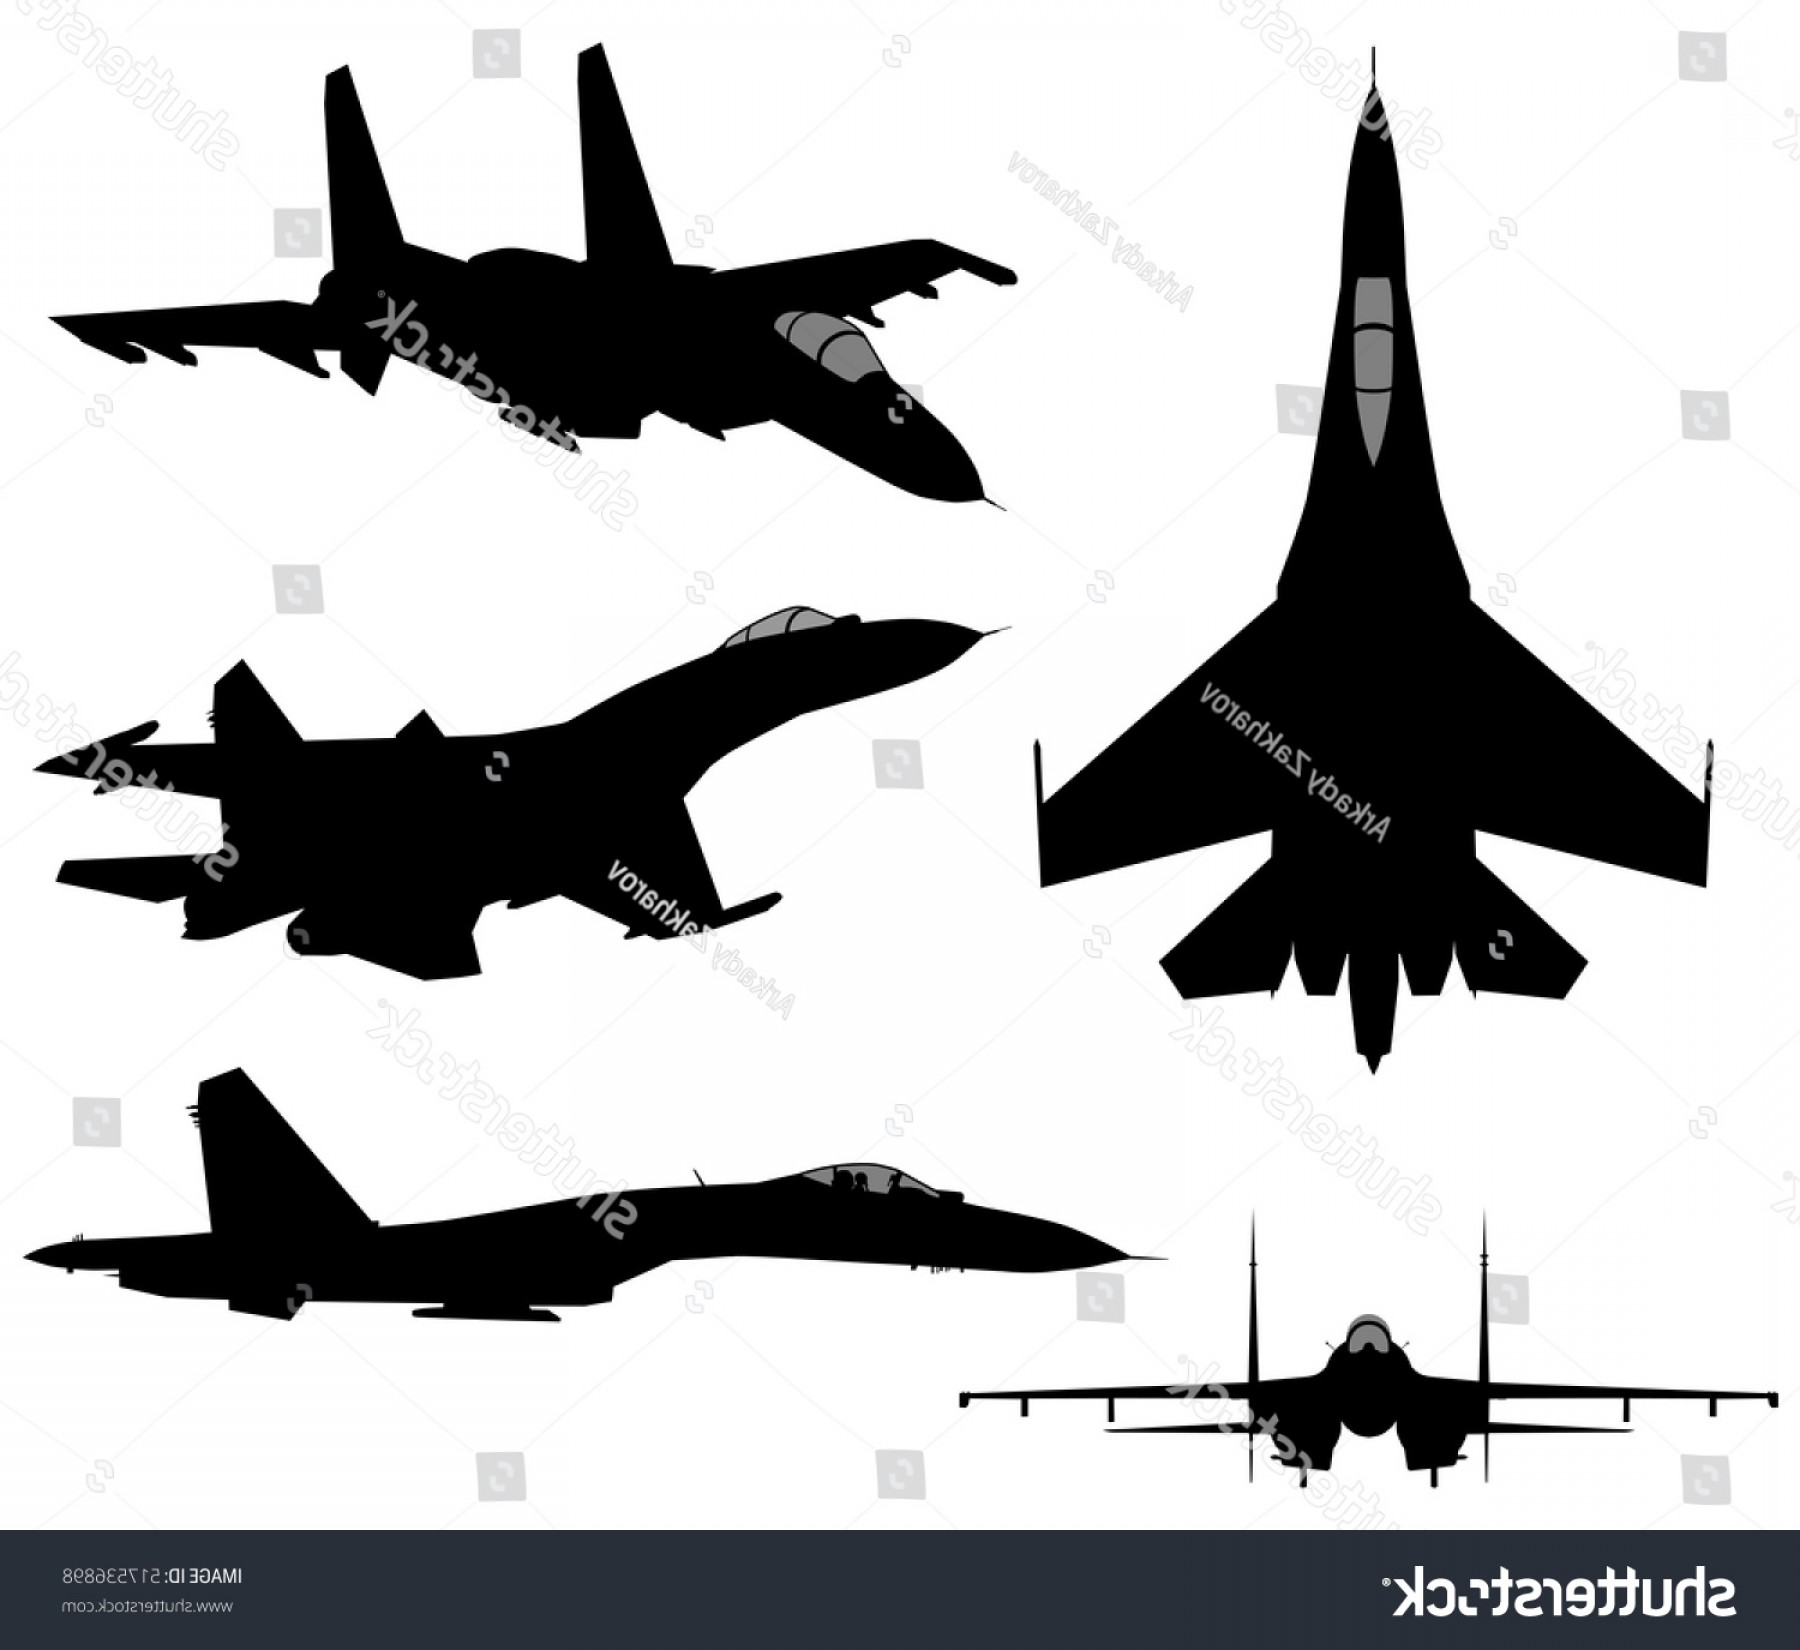 Vector Jet Fighter: Set Military Jet Fighter Silhouettes